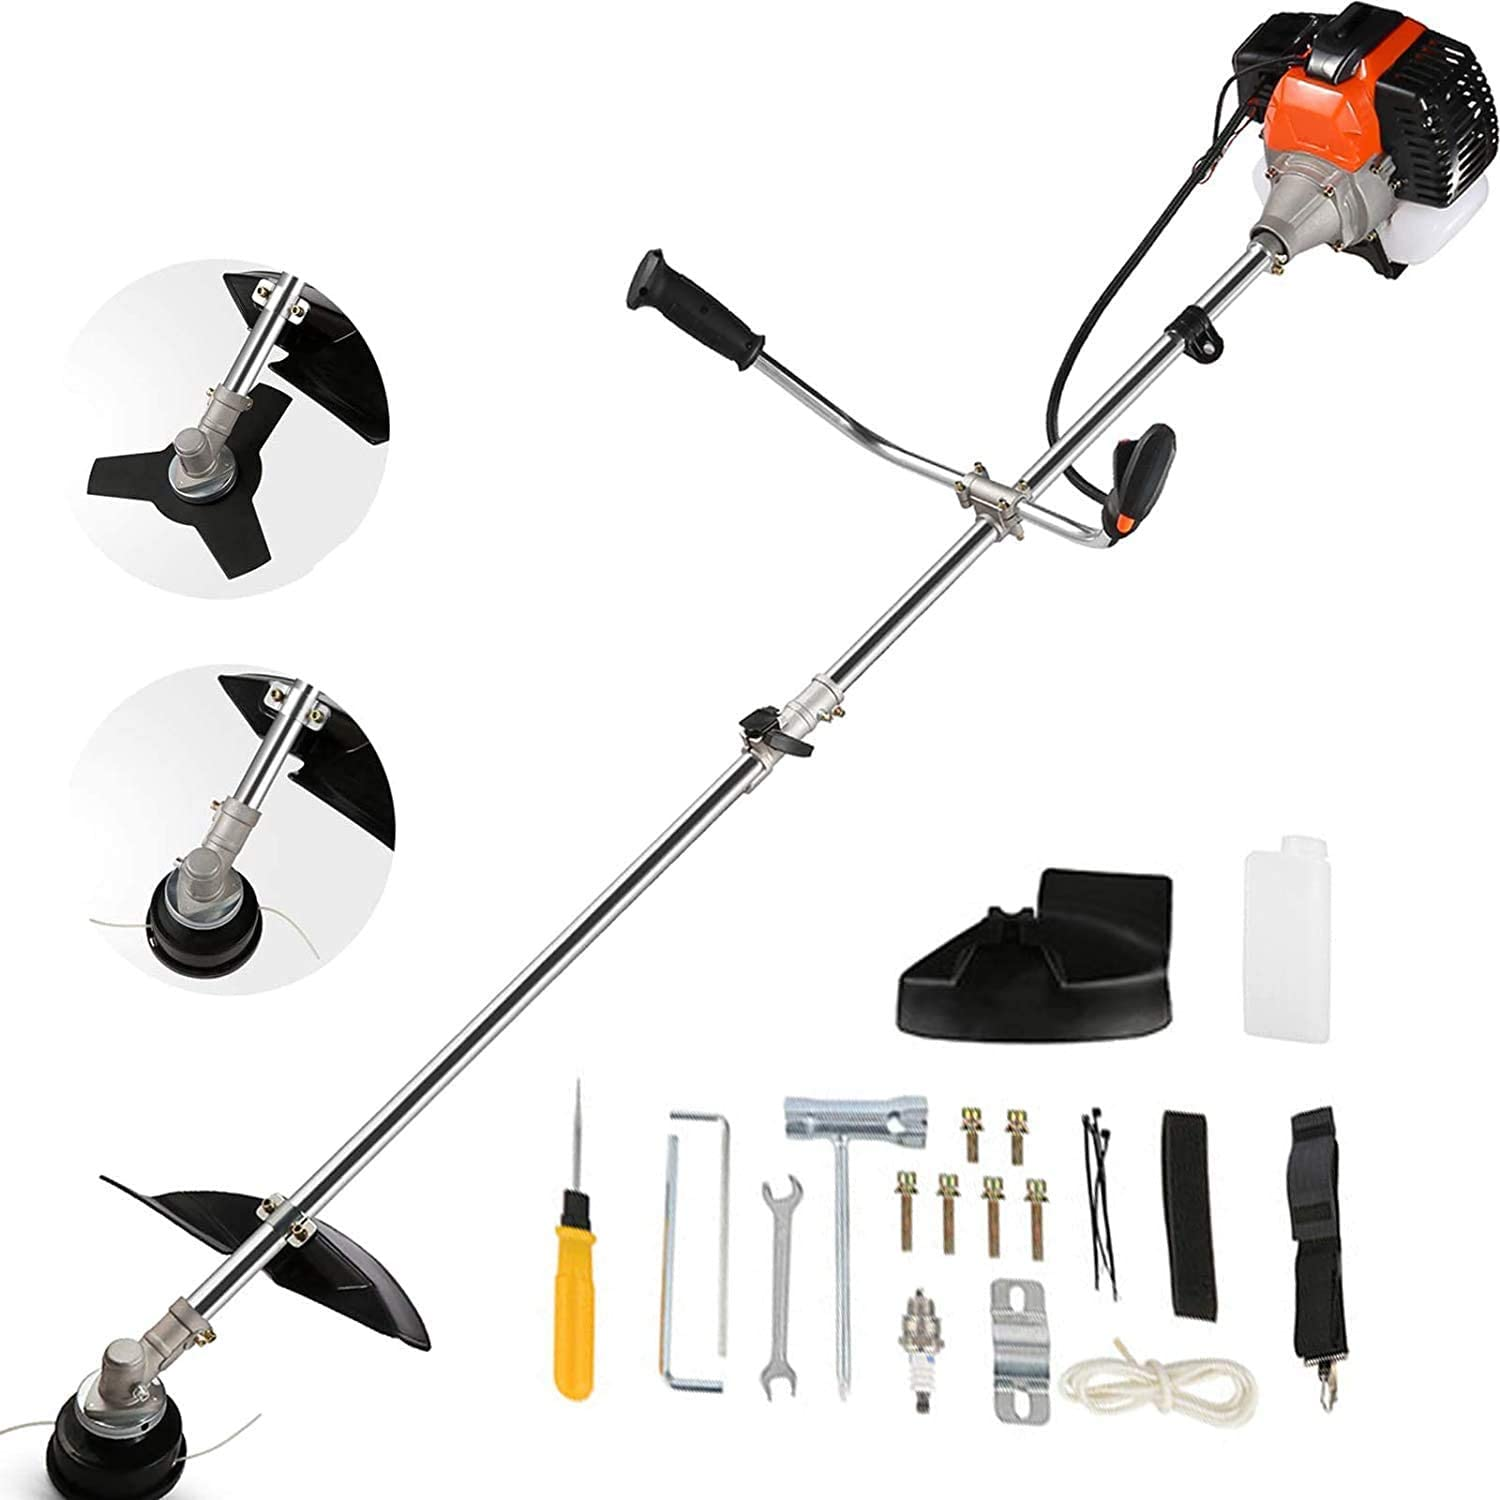 Outlet sale Long-awaited feature 42.7cc Weed Eater Gas Powered Grass Edge Cordless 2-in-1 Trimmer